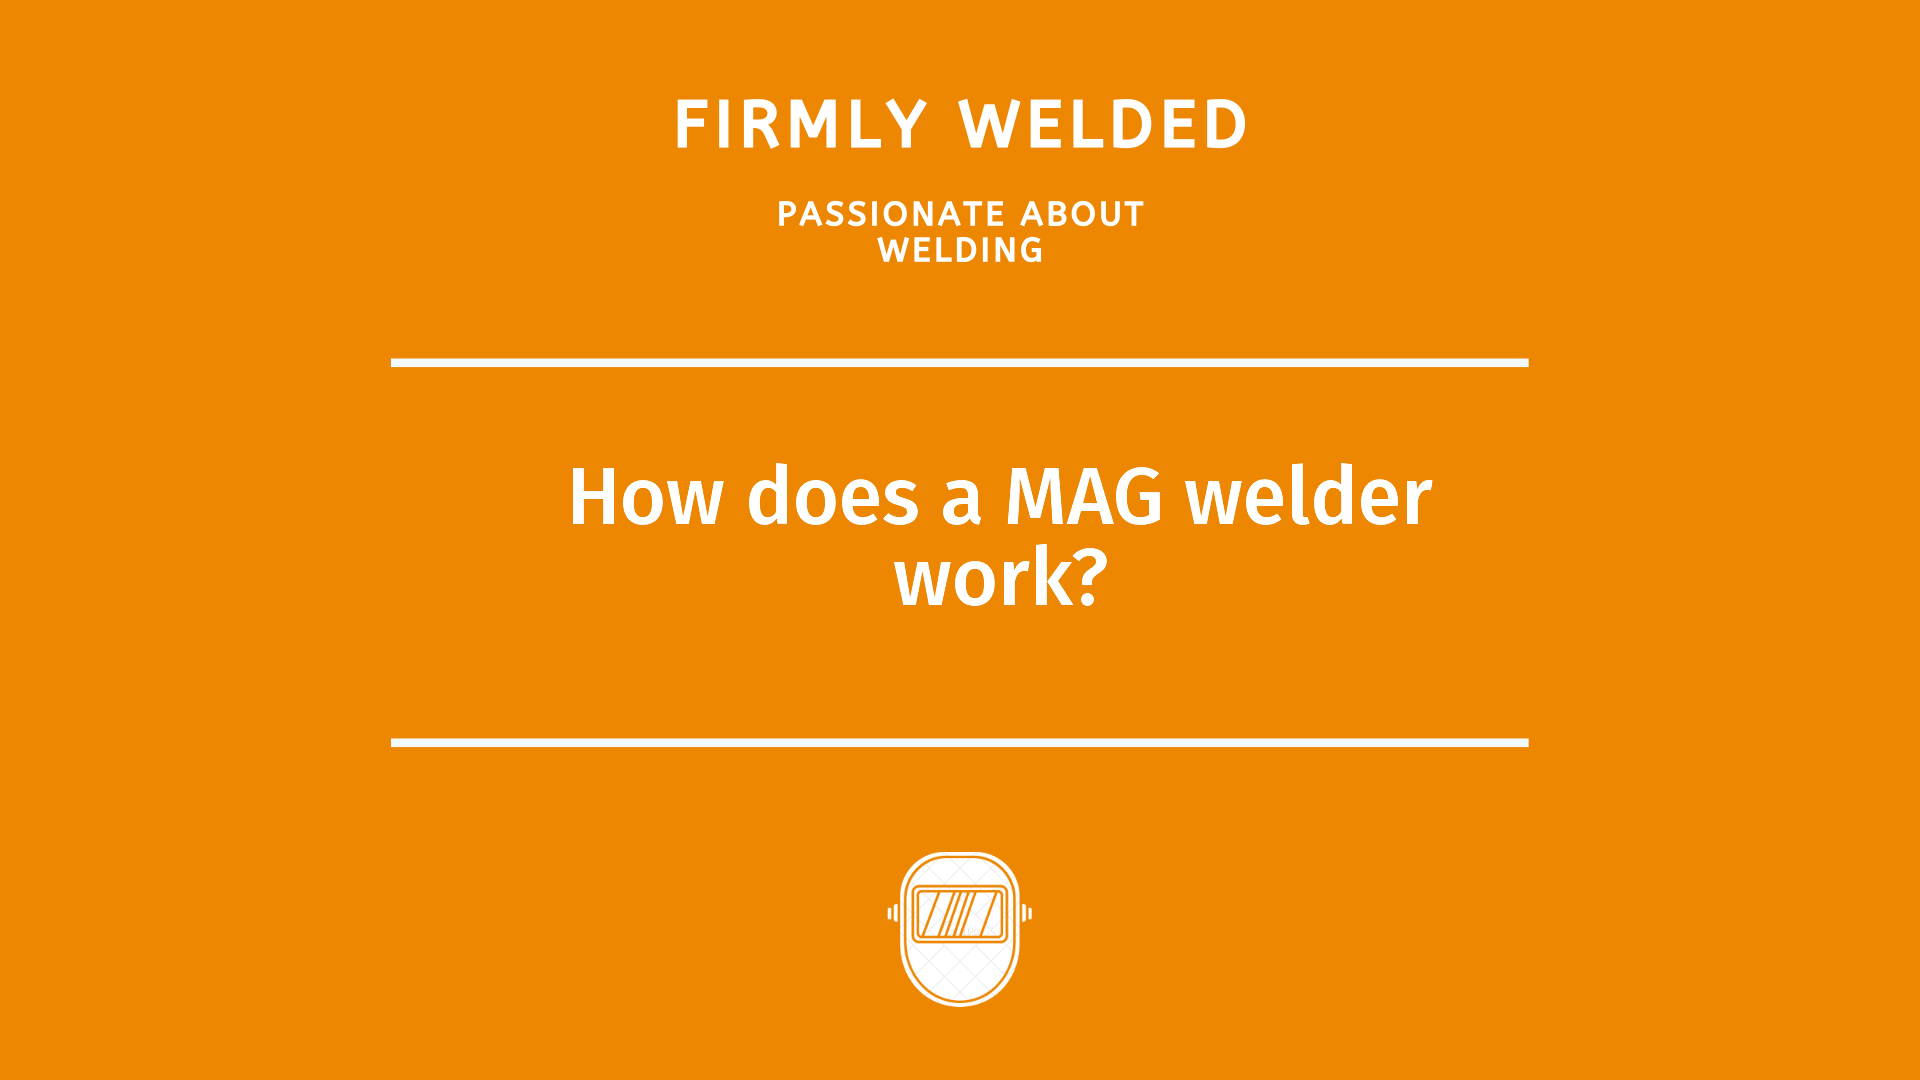 How does a MAG welder work?